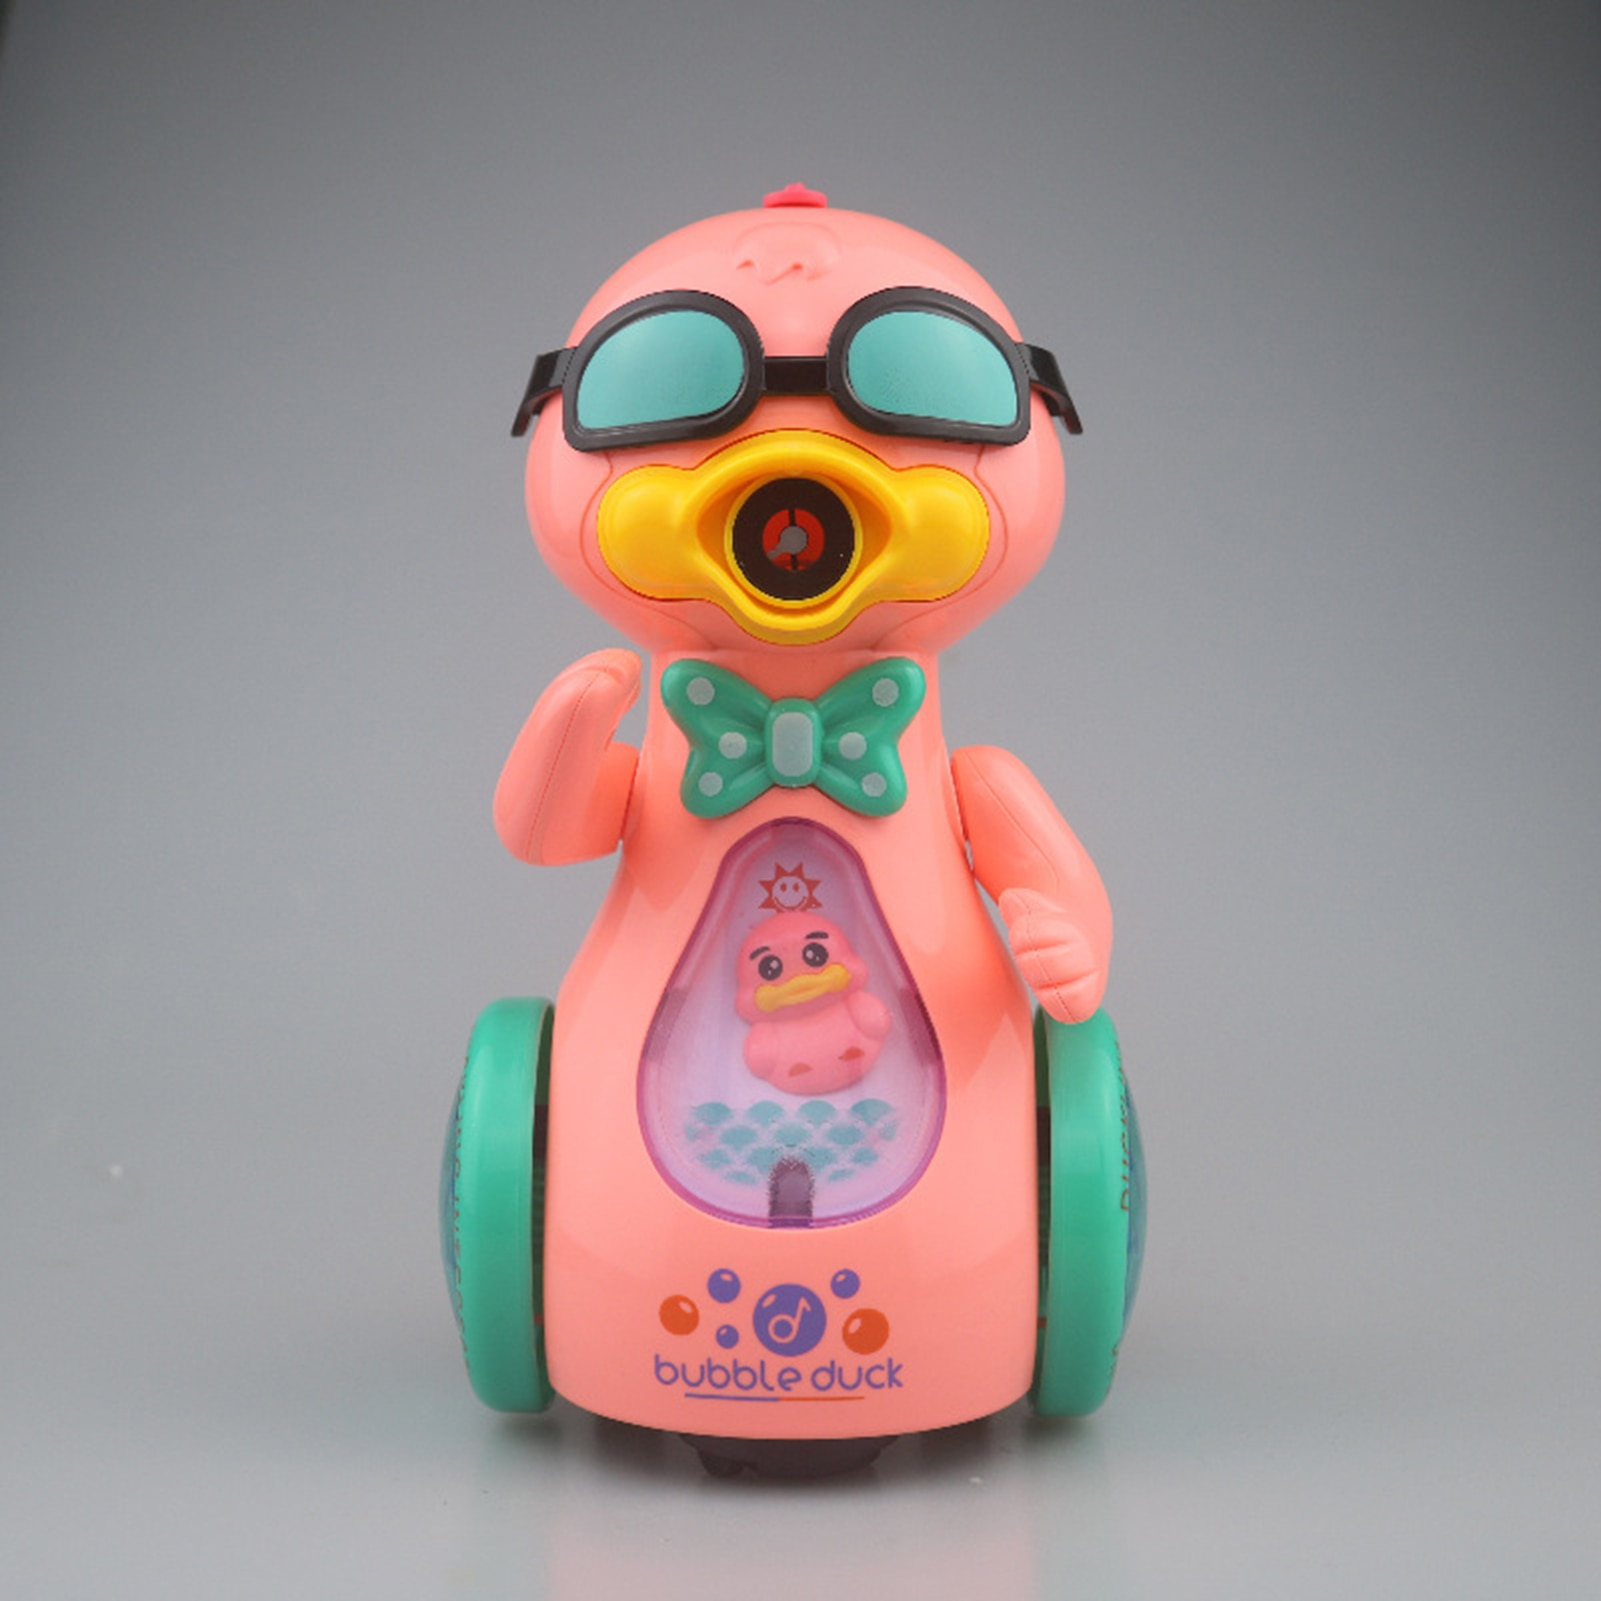 Cute Duck Bubble Machine For Kids Toy With Music Light Automatic Walkable Soap Water Bubble Blower Gun Outdoor Toys  - buy with discount